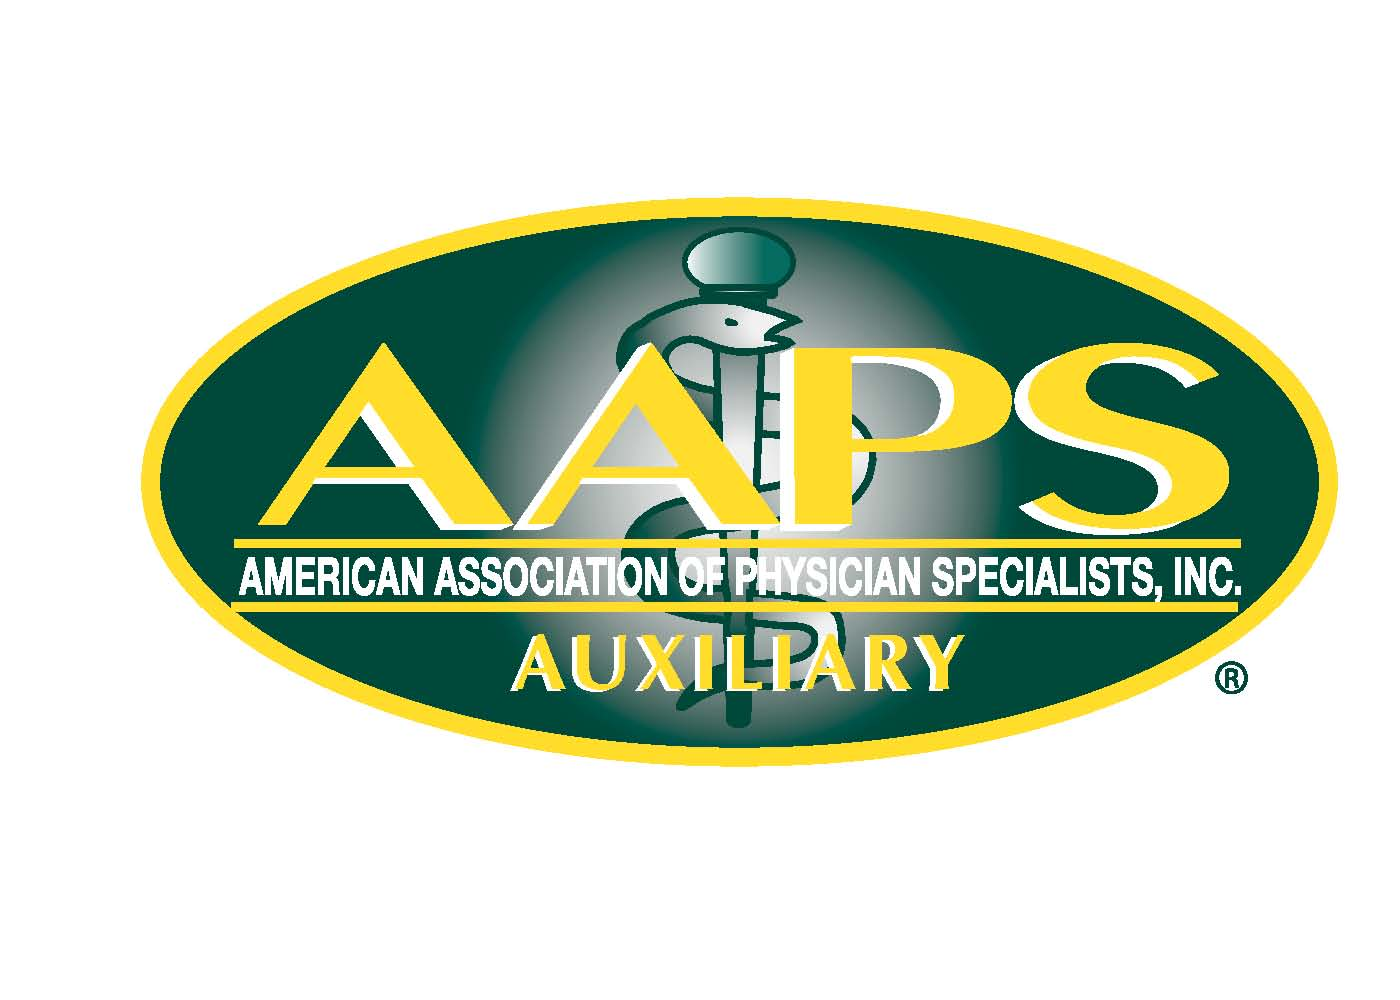 AAPS Auxiliary